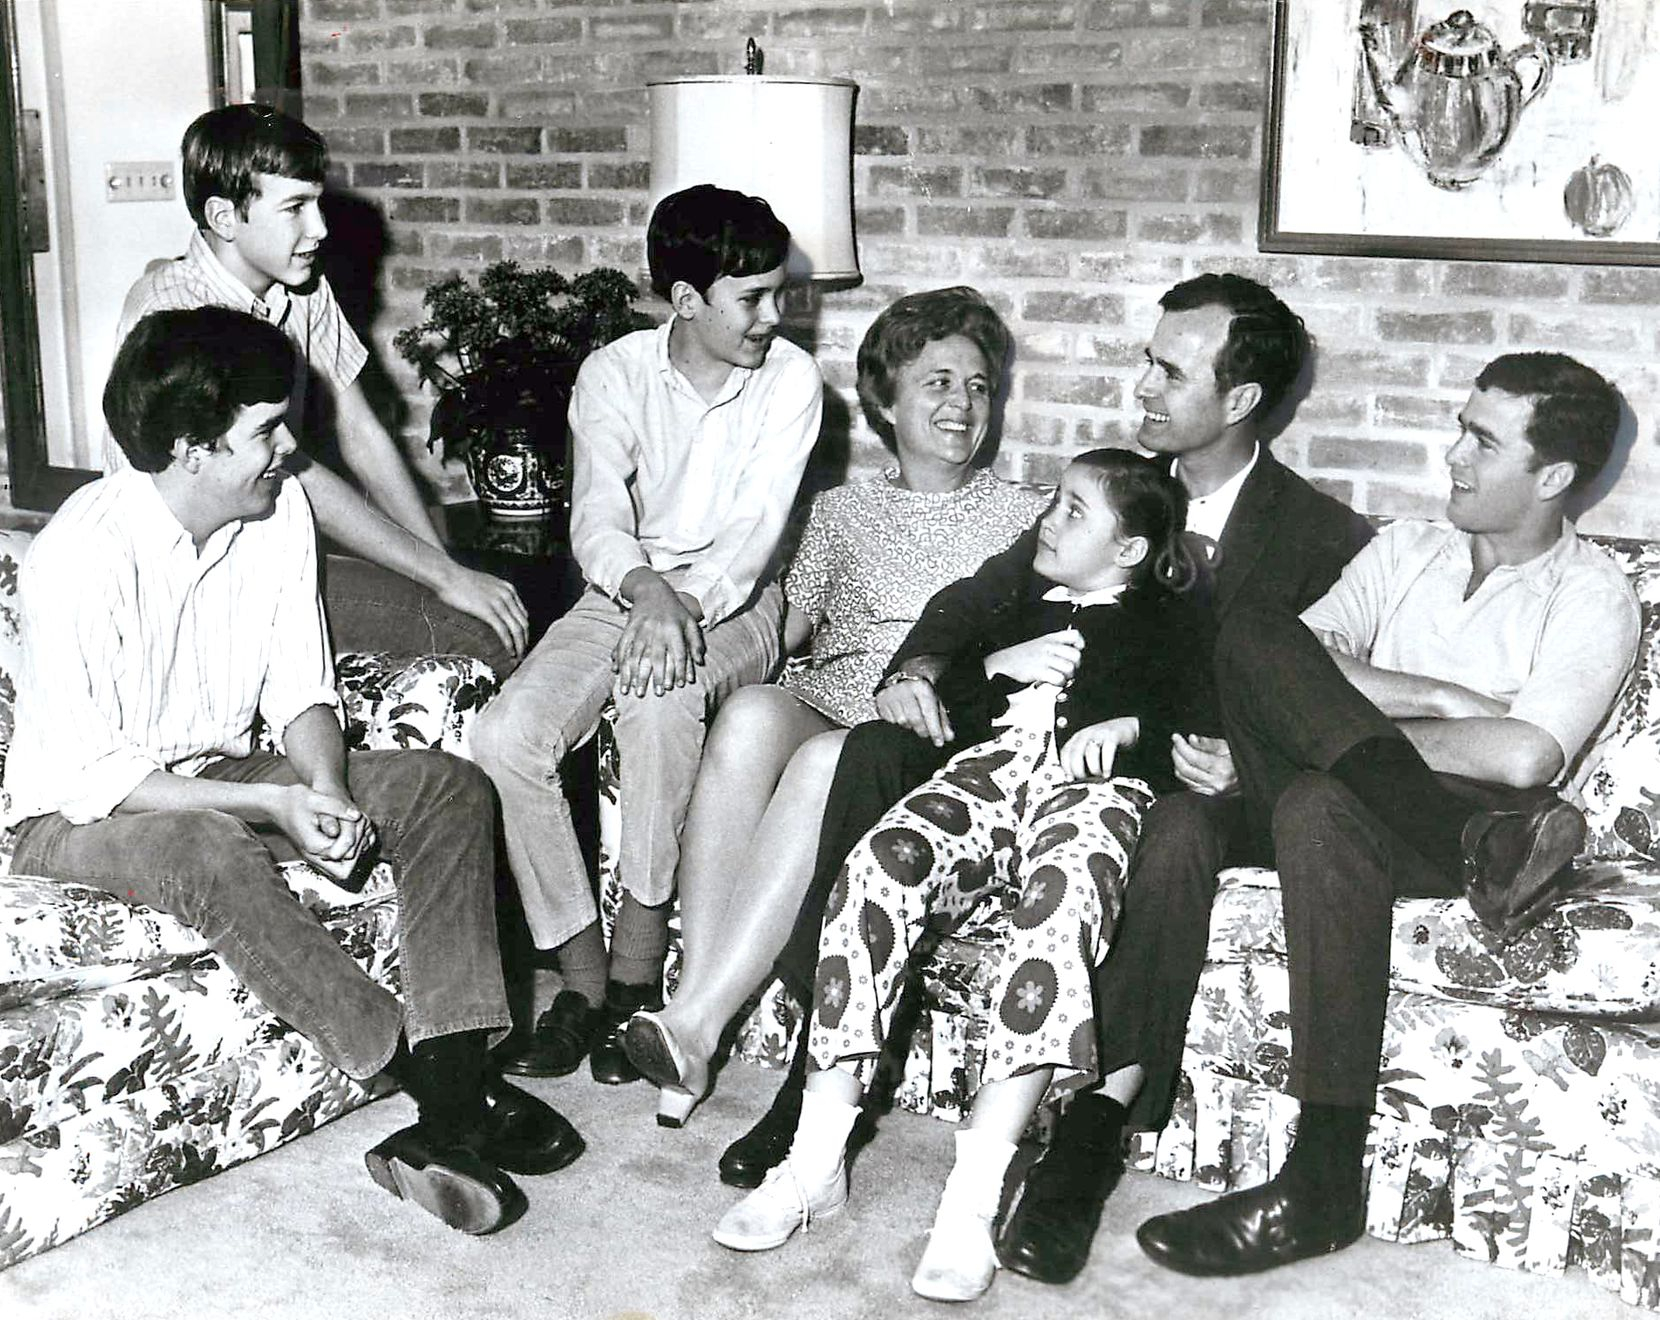 George H.W. Bush is shown with his family in the 1960s.  From left are Jeb, Neil, Marvin, Barbara, Dorothy, George H.W. and George W. Bush.